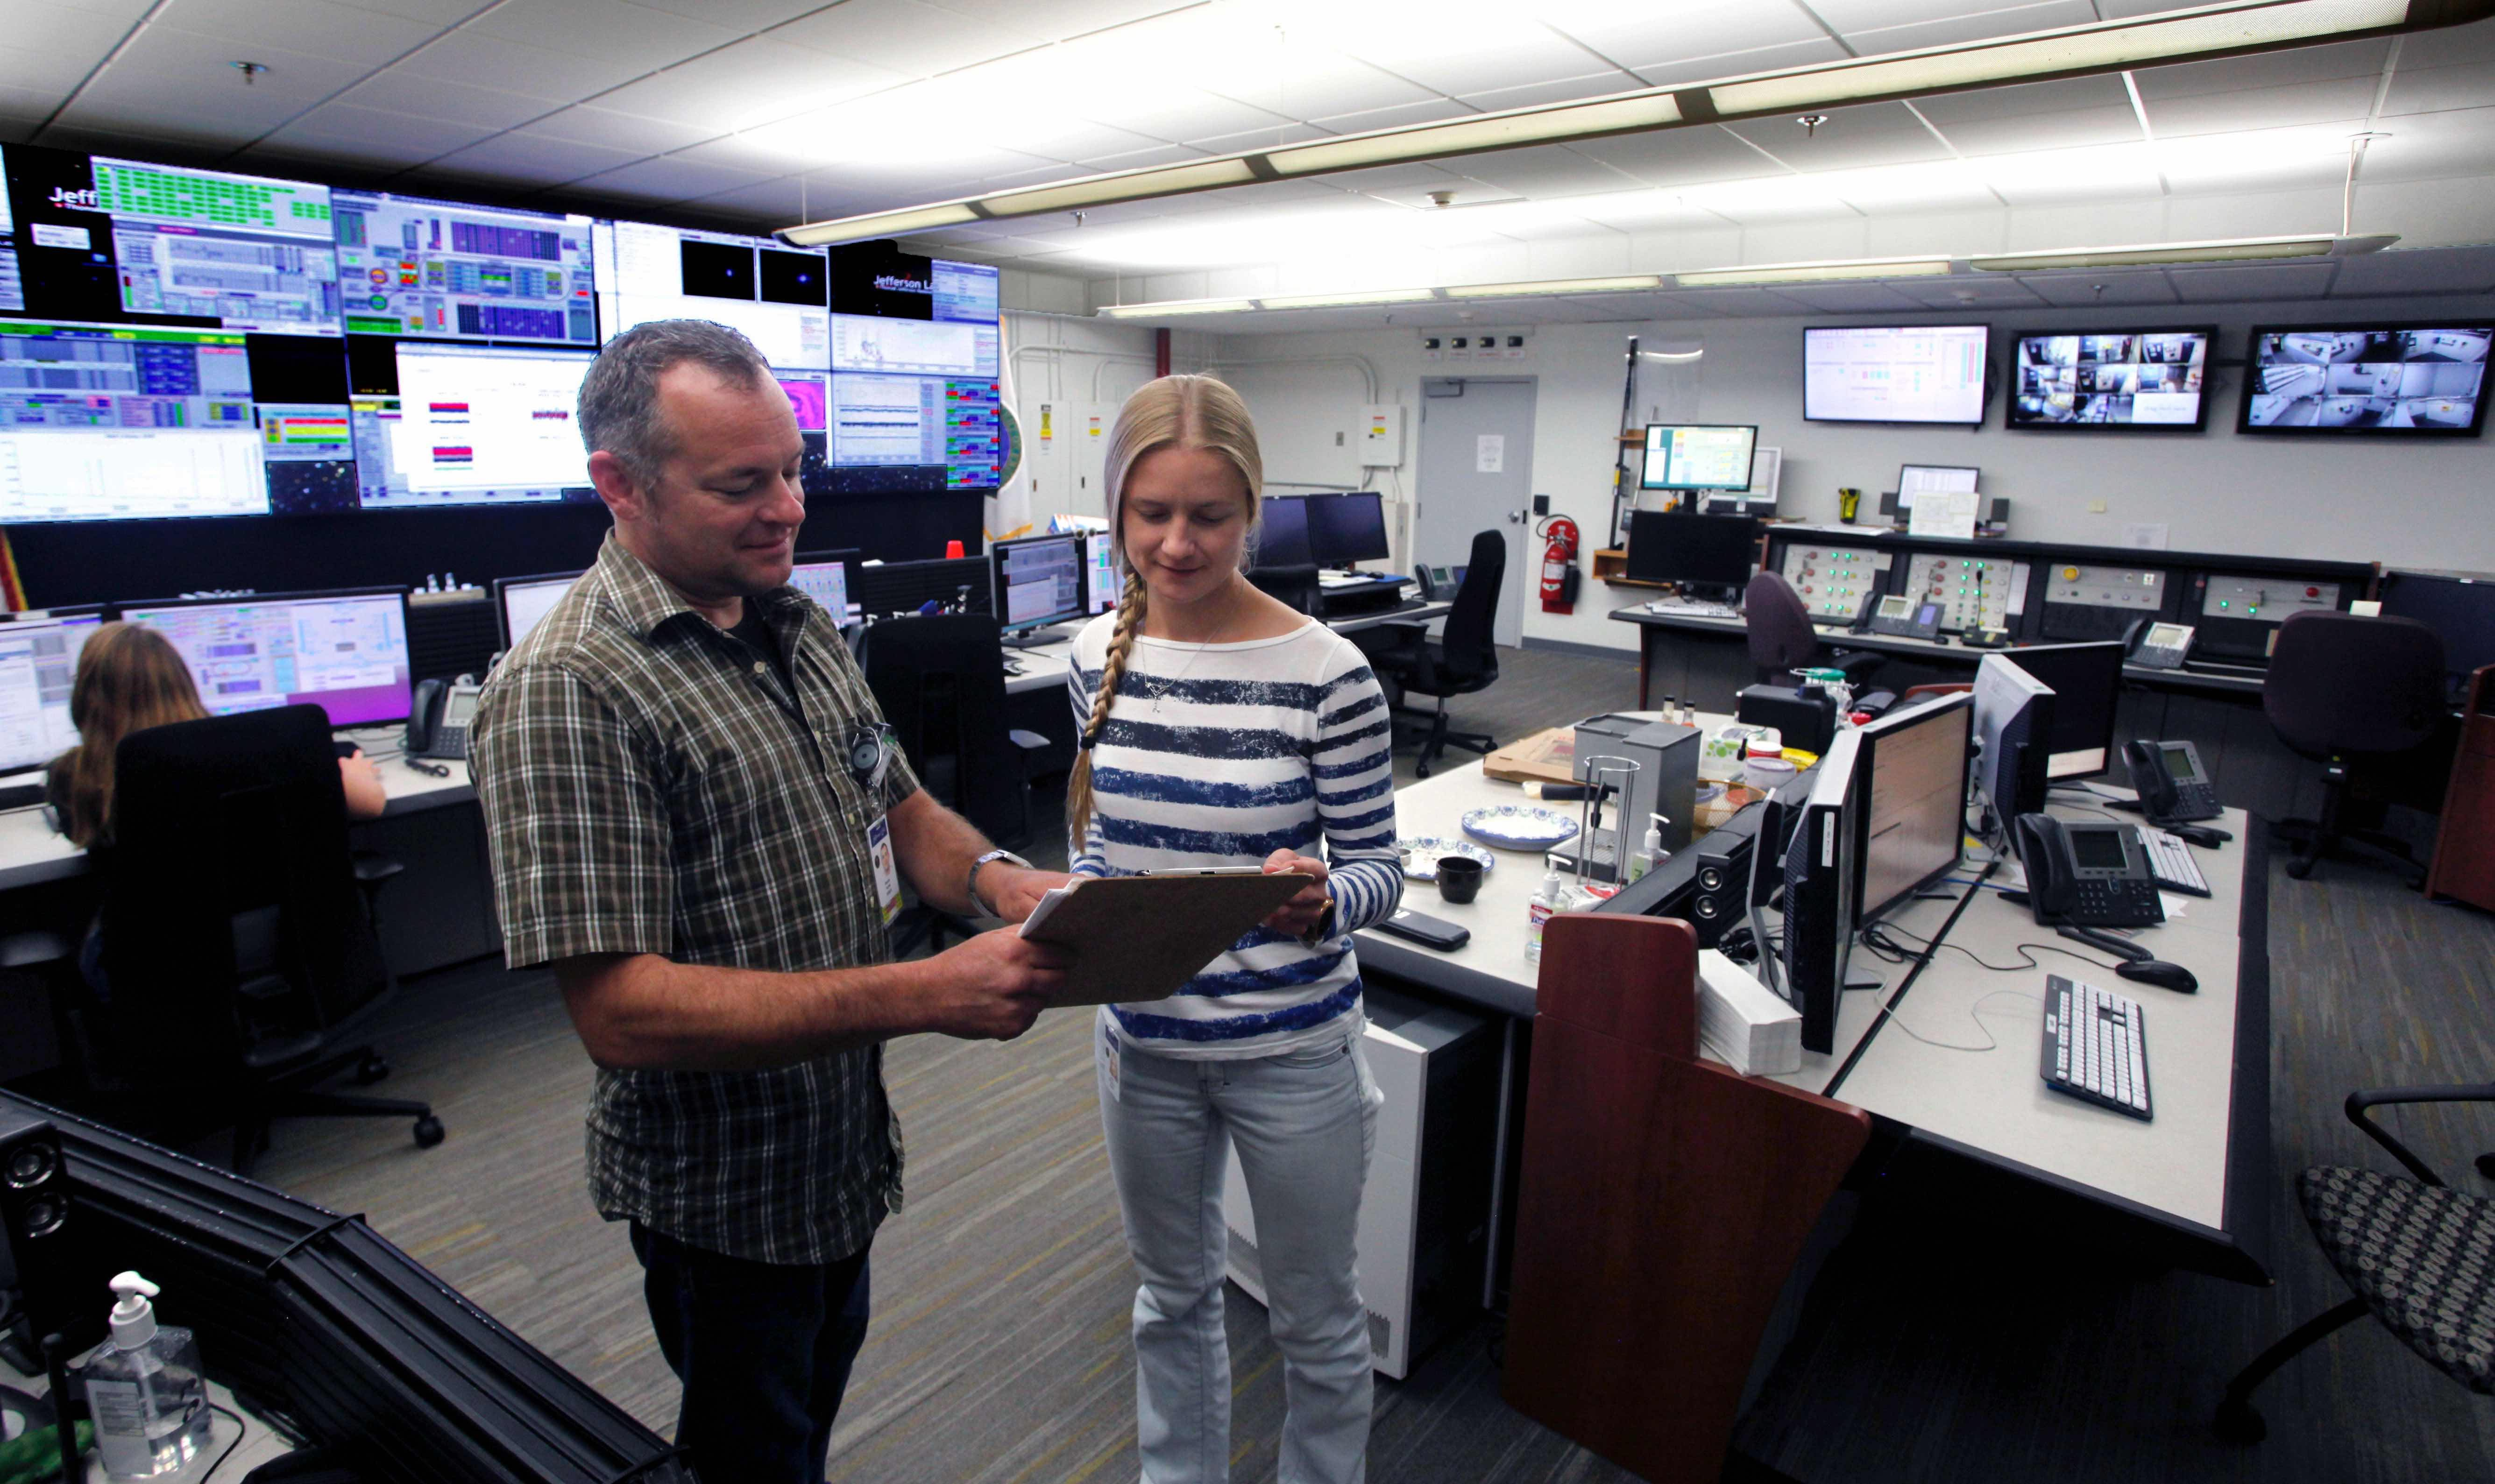 Anna Sabalina (left) confers with an accelerator operator in the CEBAF control room.